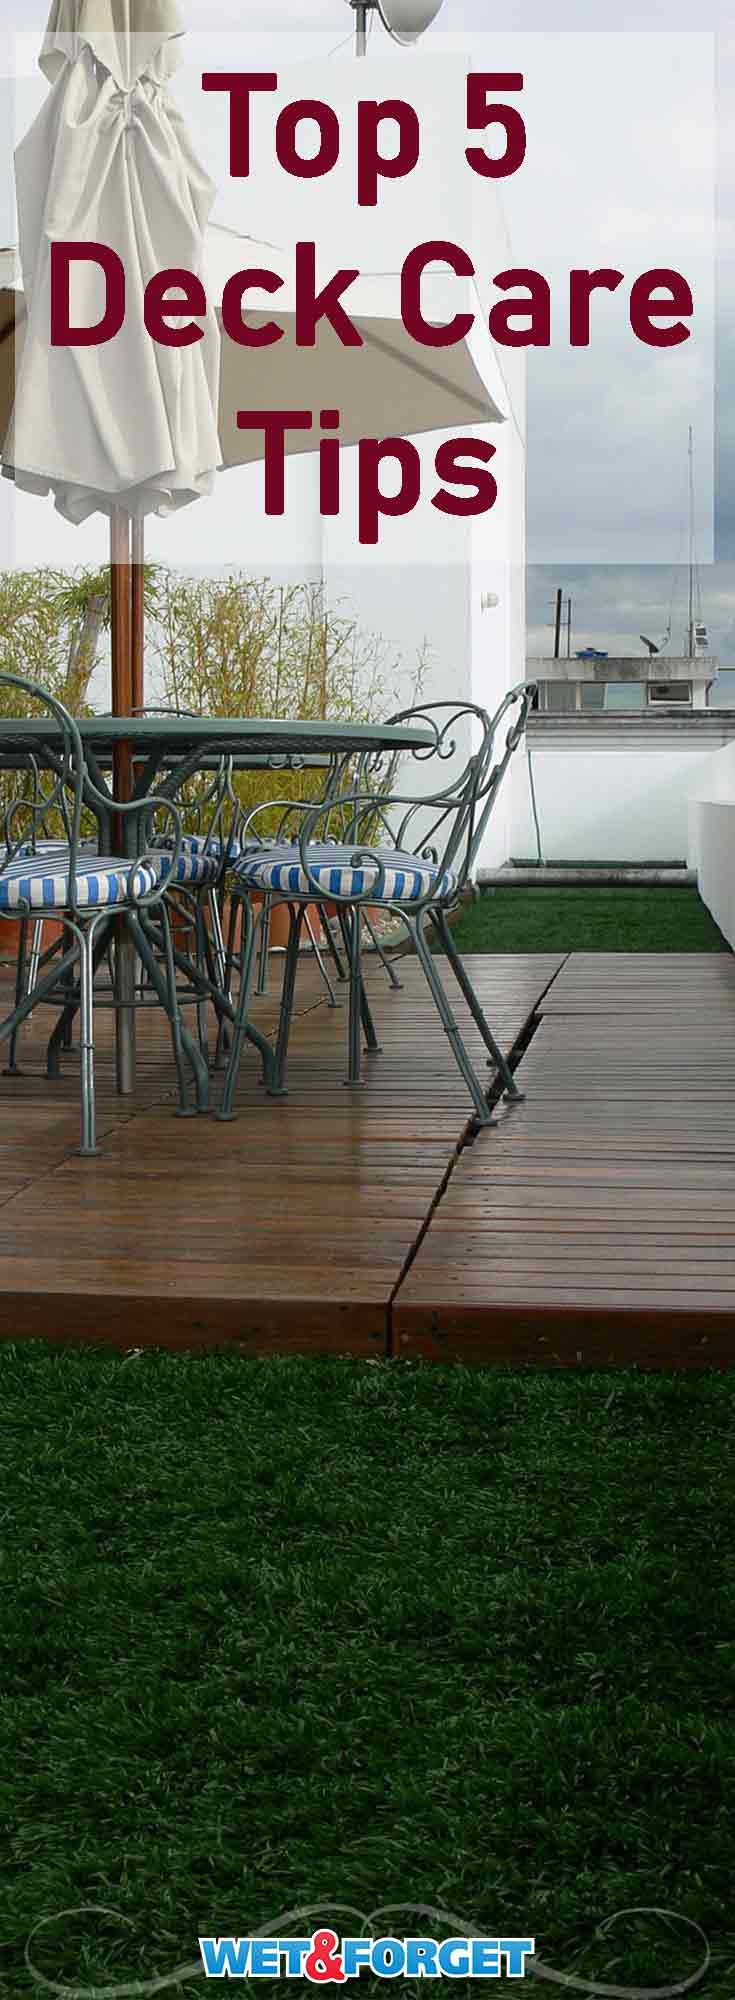 Keep your deck healthy and clean for many years to come with these top 5 care tips!